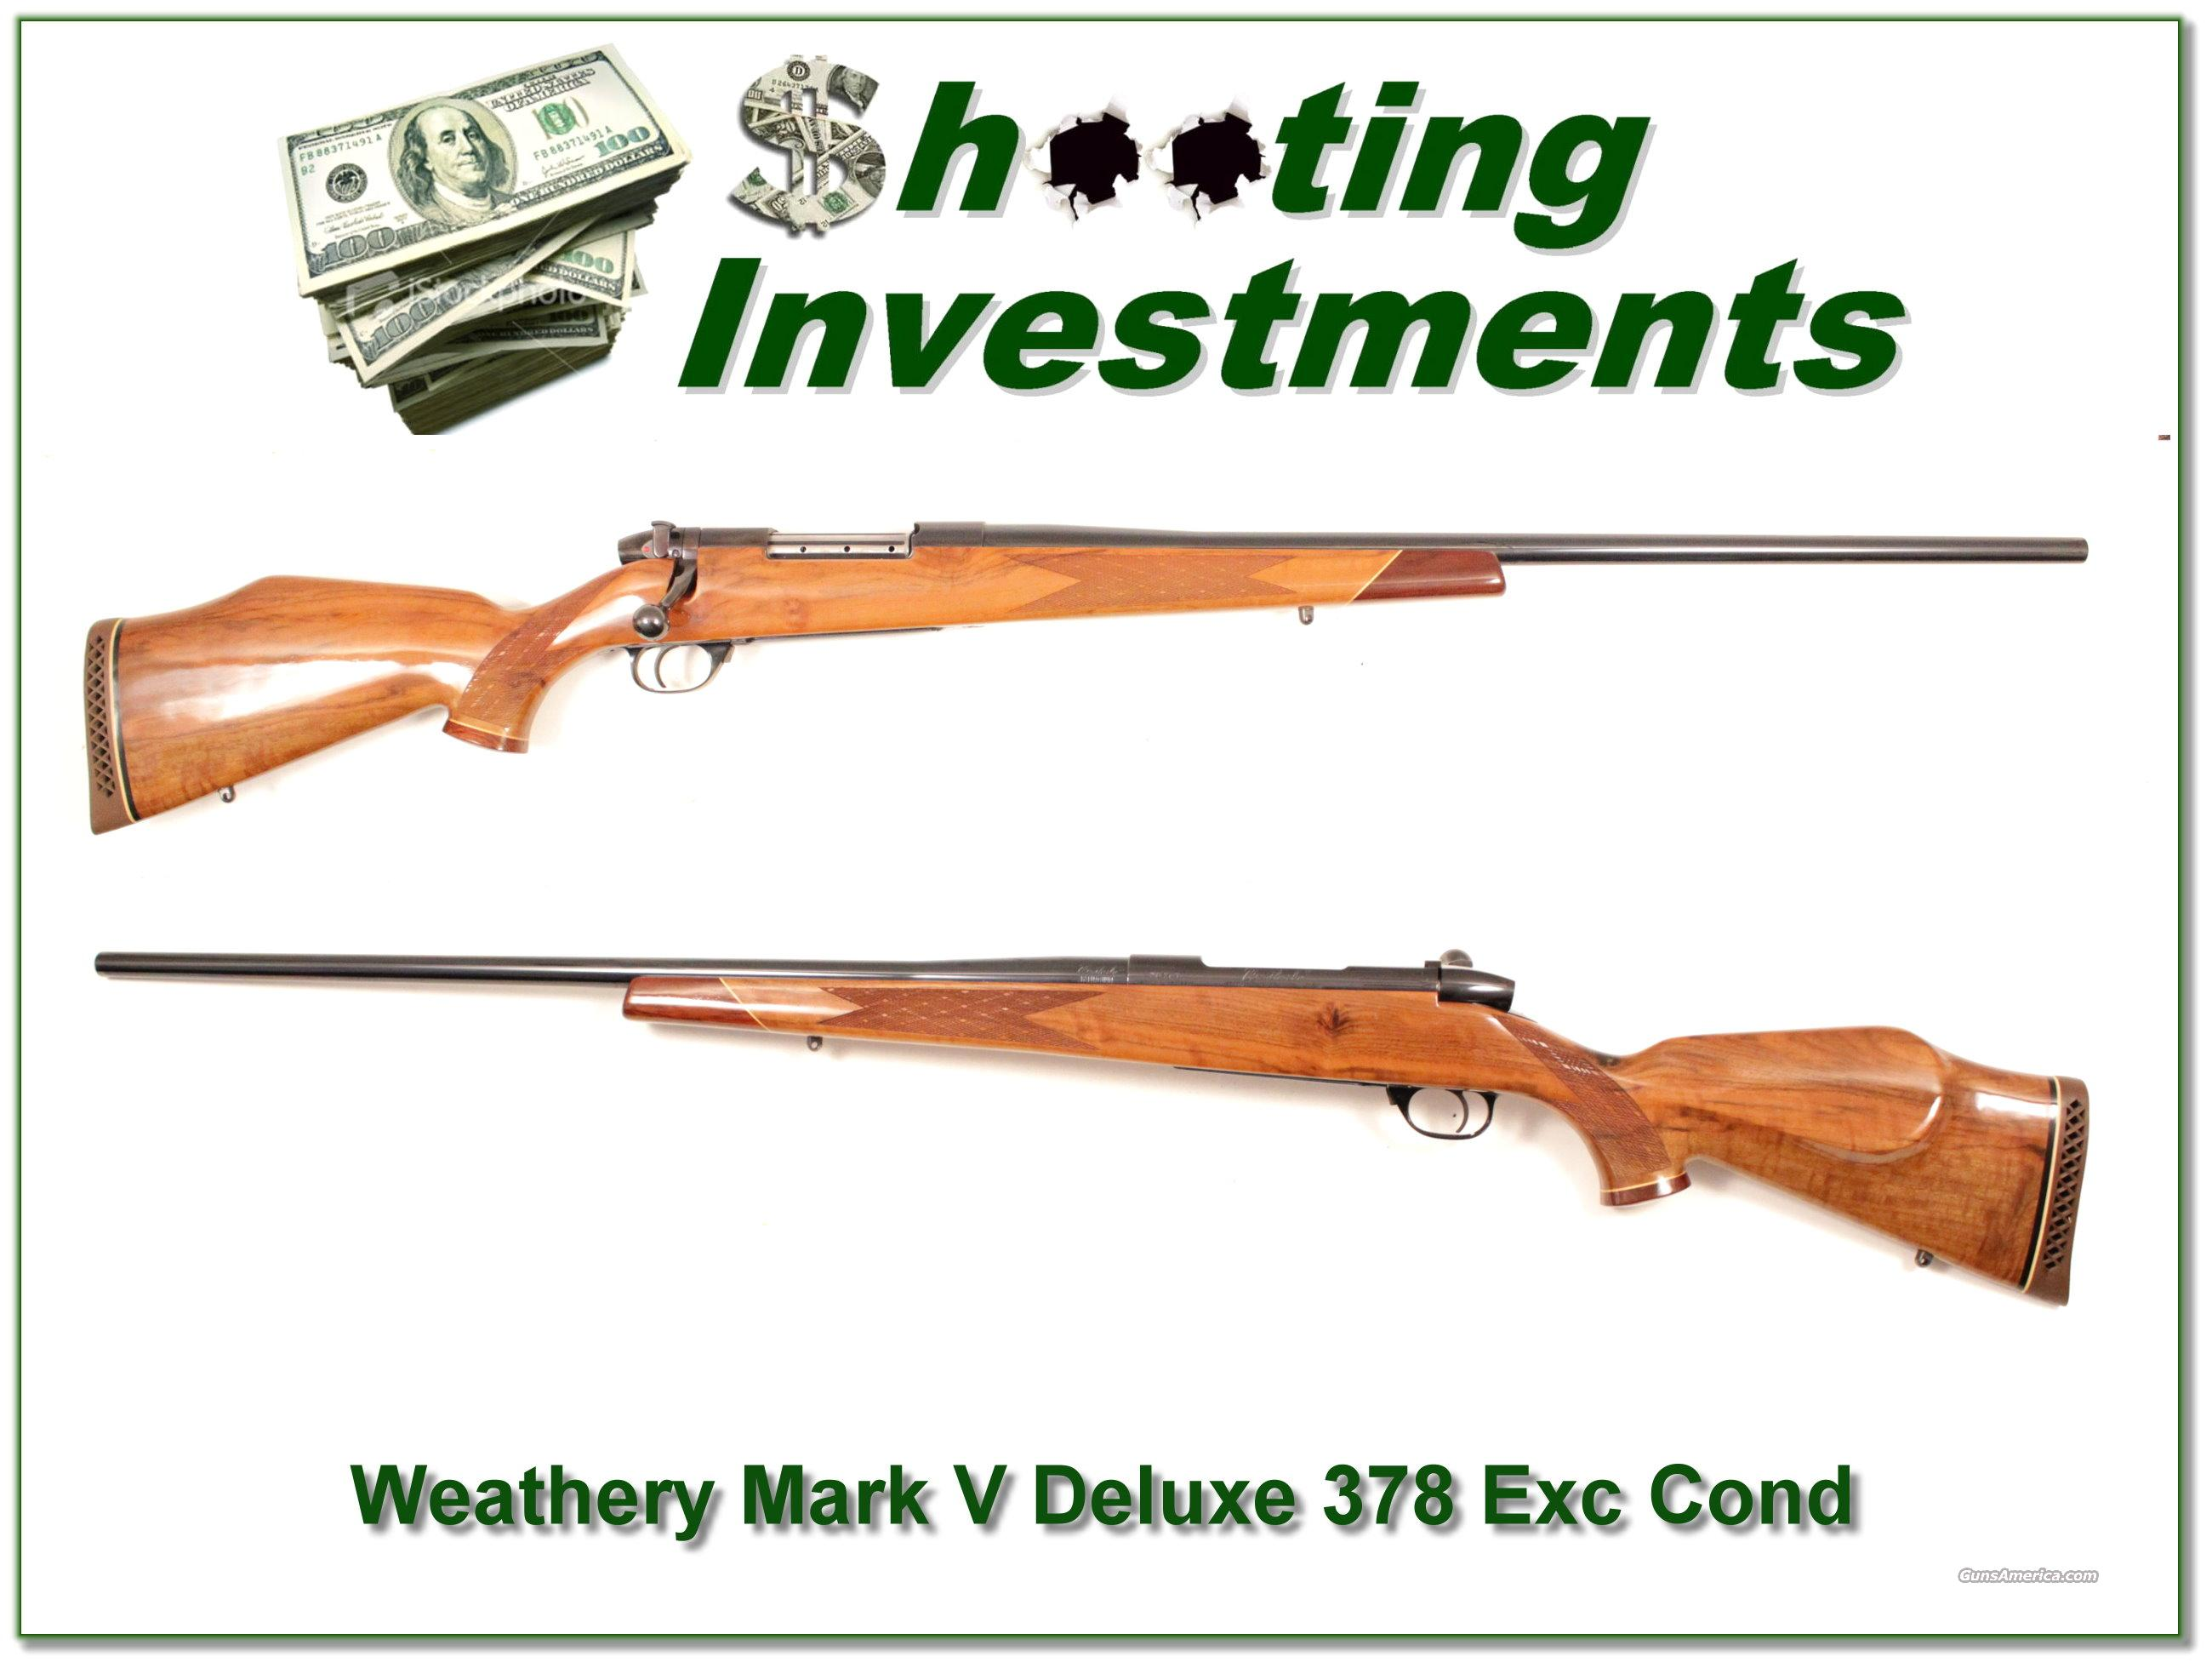 Weatherby Mark V Deluxe 378 26in near new!  Guns > Rifles > Weatherby Rifles > Sporting